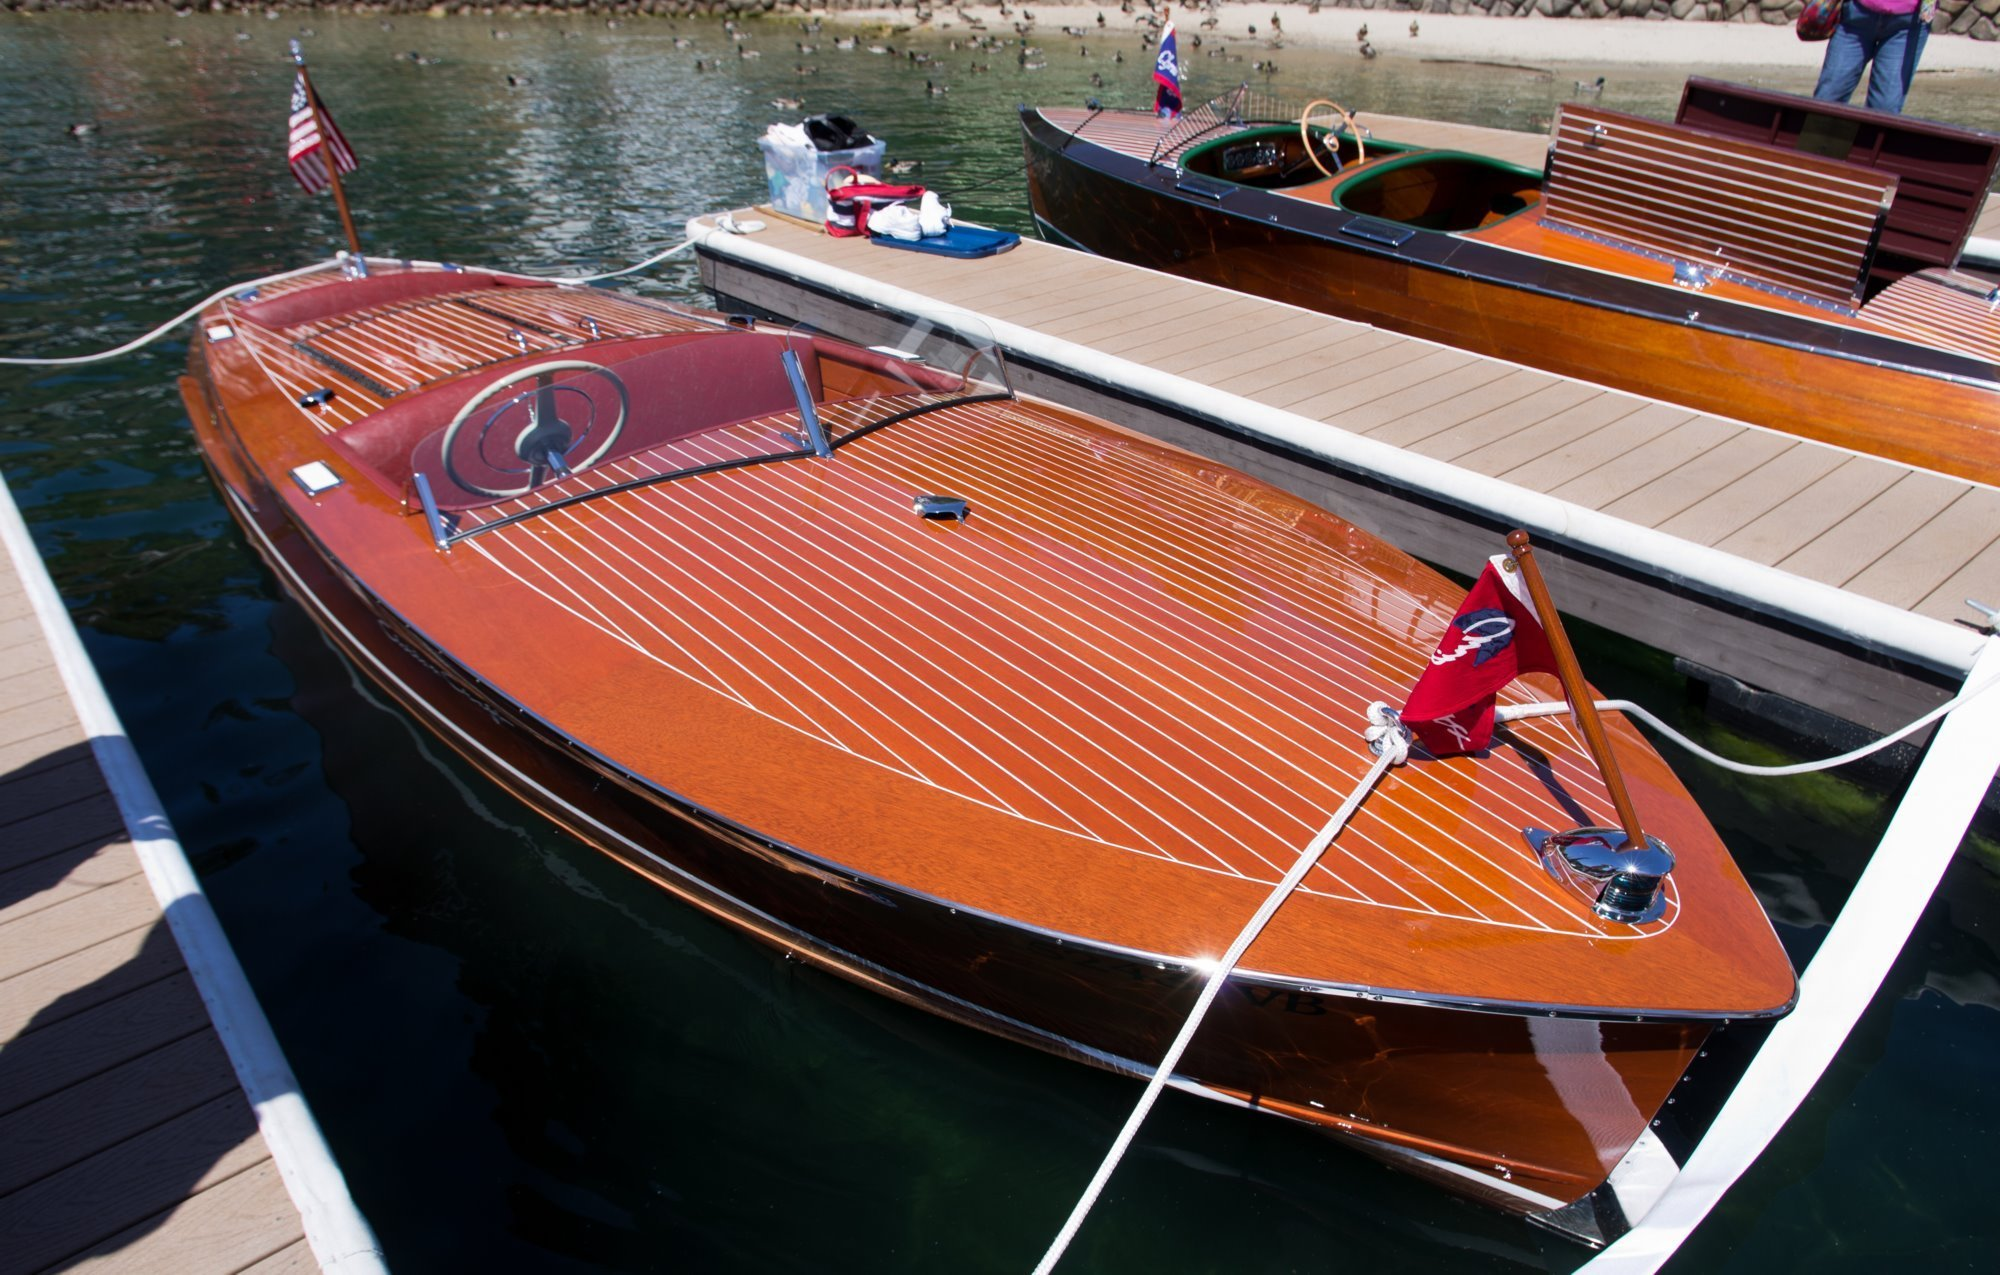 antique amp classic wooden boats   pentaxforums